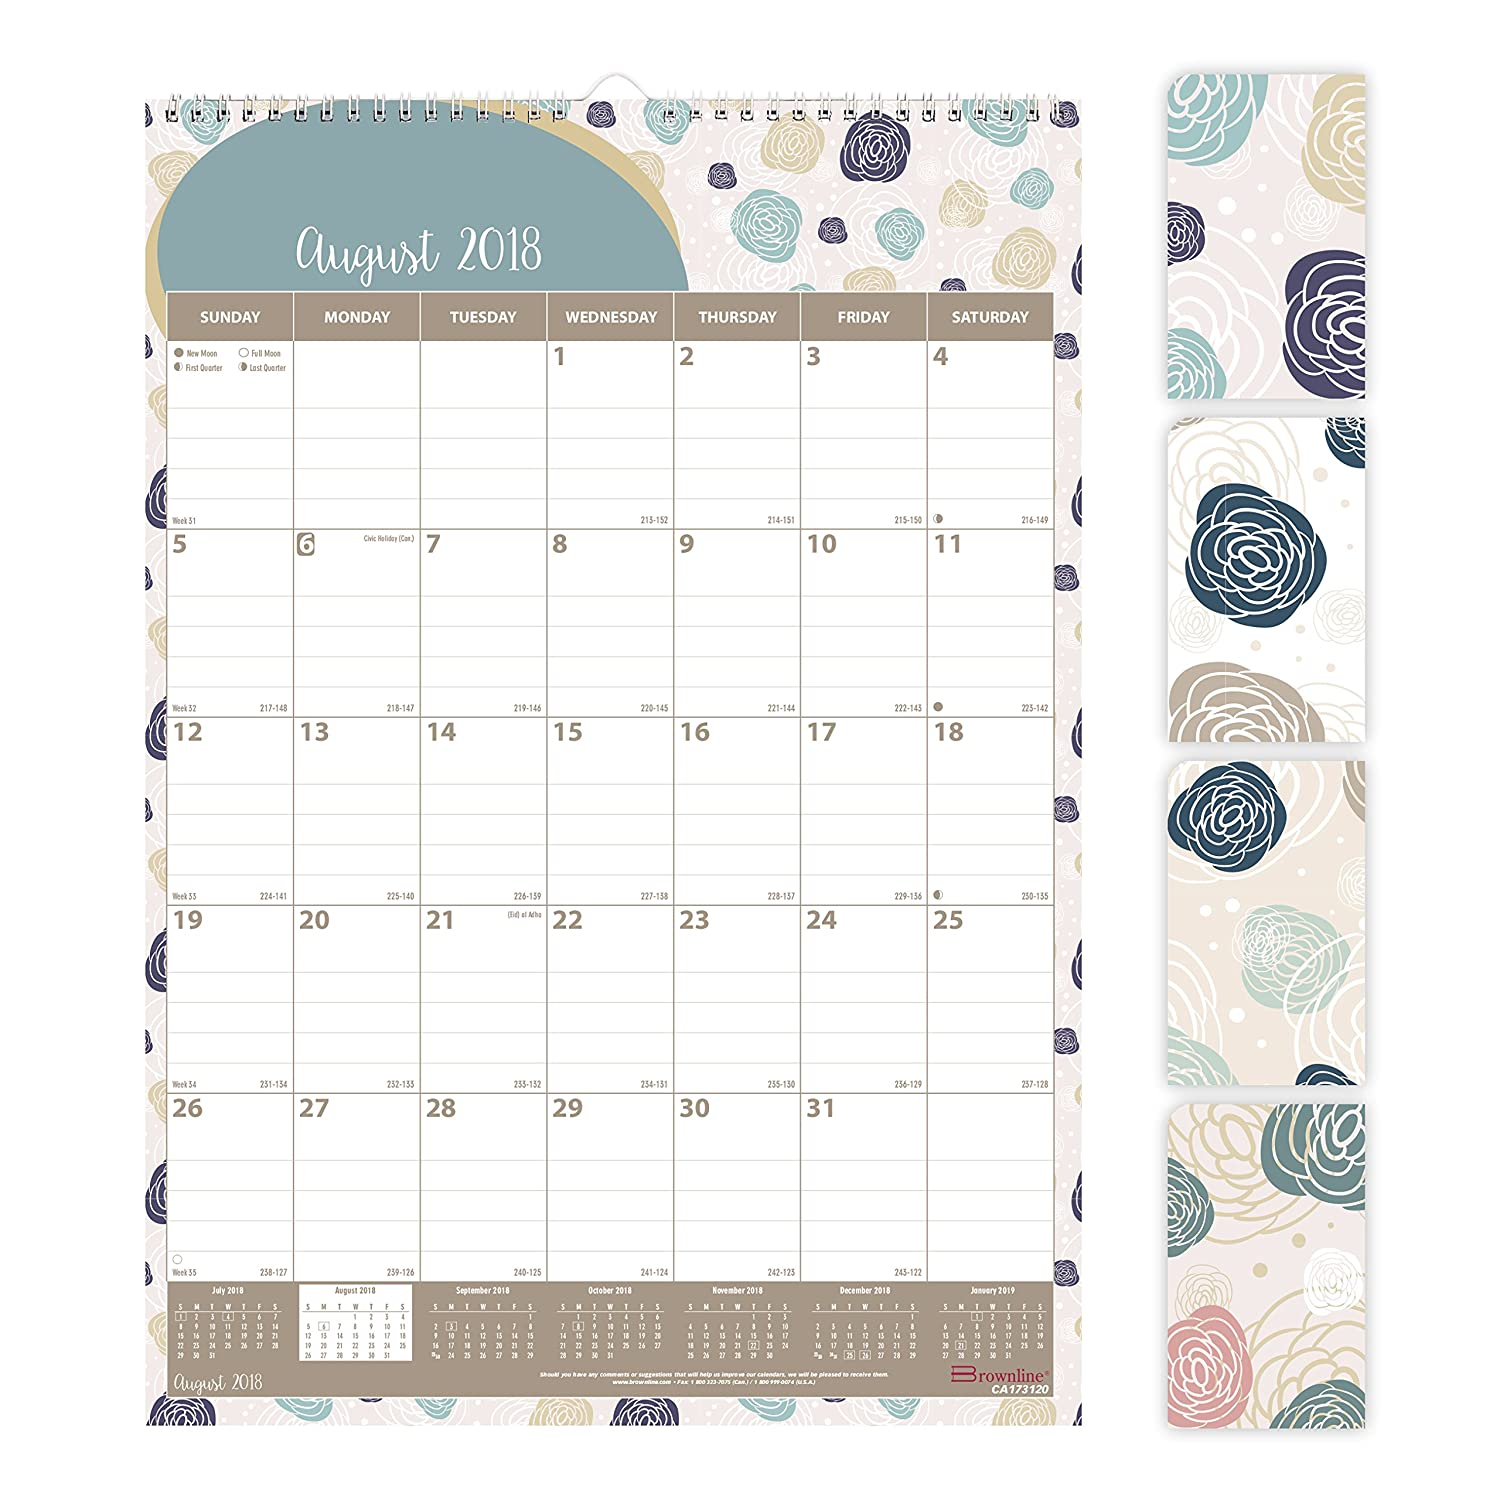 Brownline 2018-2019 Monthly Academic Colorful Wall Calendar with Begonia Design, 12 x 17, August 2018 to July 2019 (CA173120-19) REDIFORM OFFICE PRODUCTS